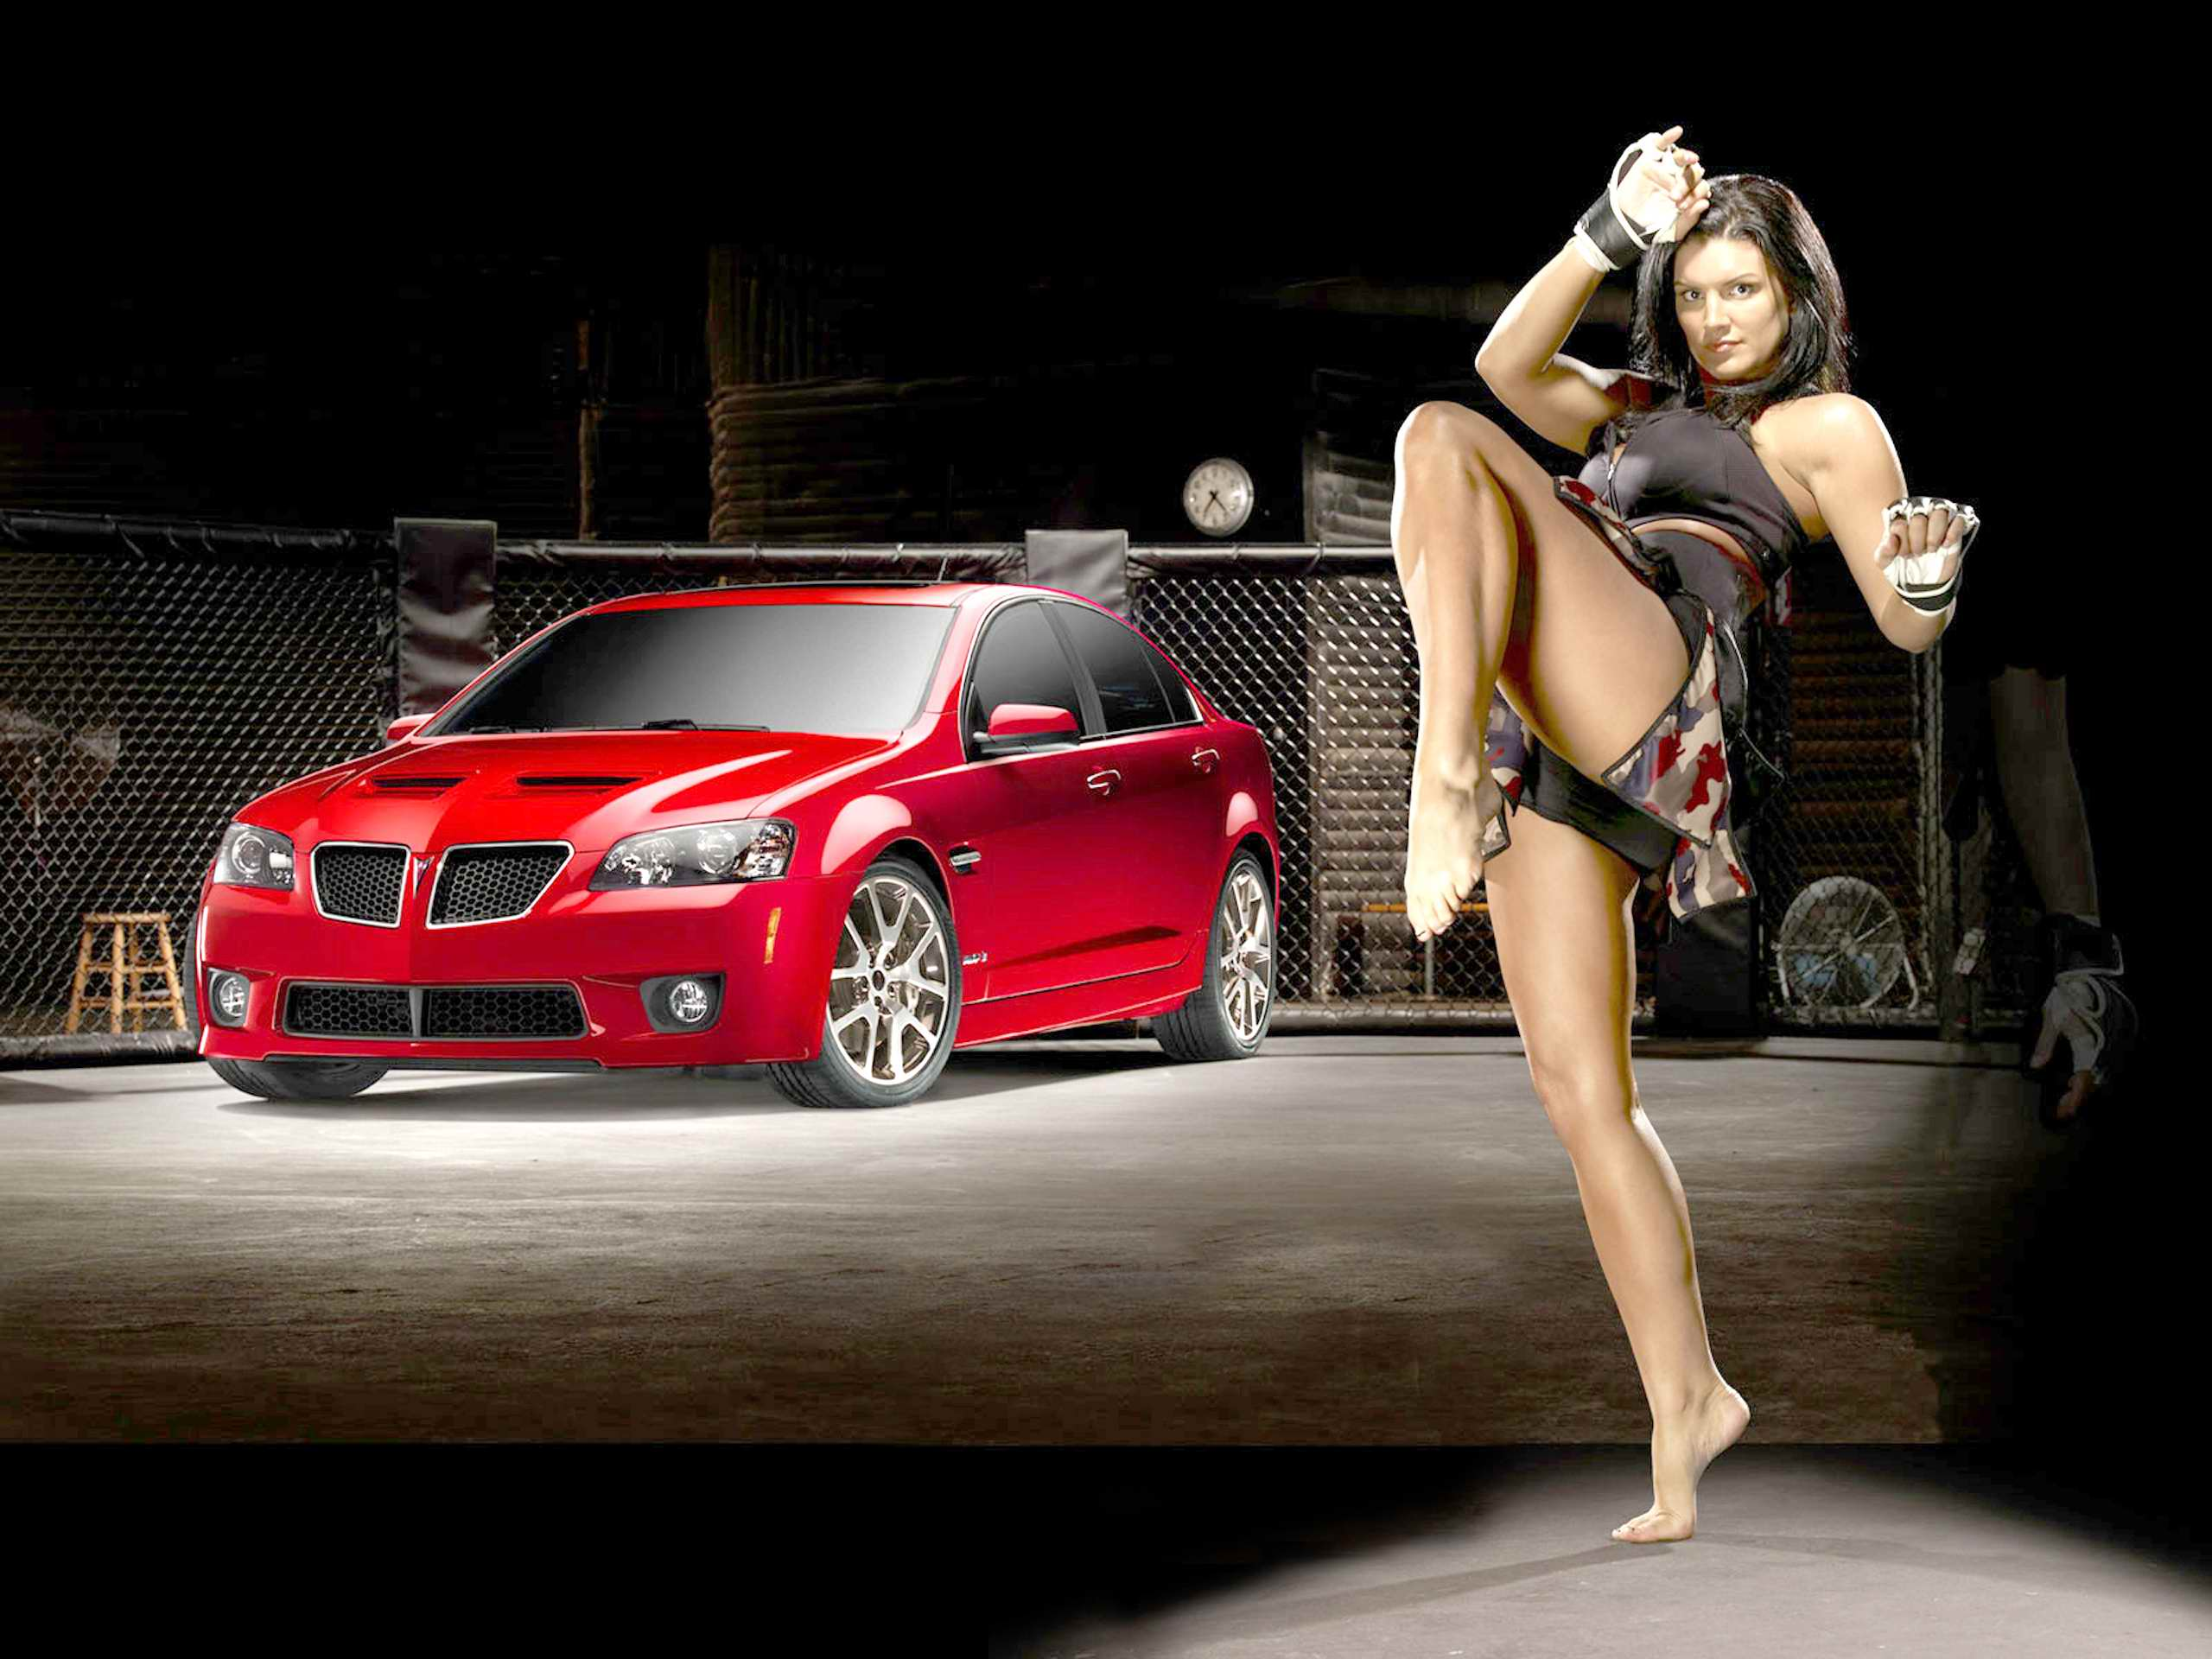 Muscle Car Wallpaper Pack Ownload Gina Carano Hd Wallpapers For Desktop Download